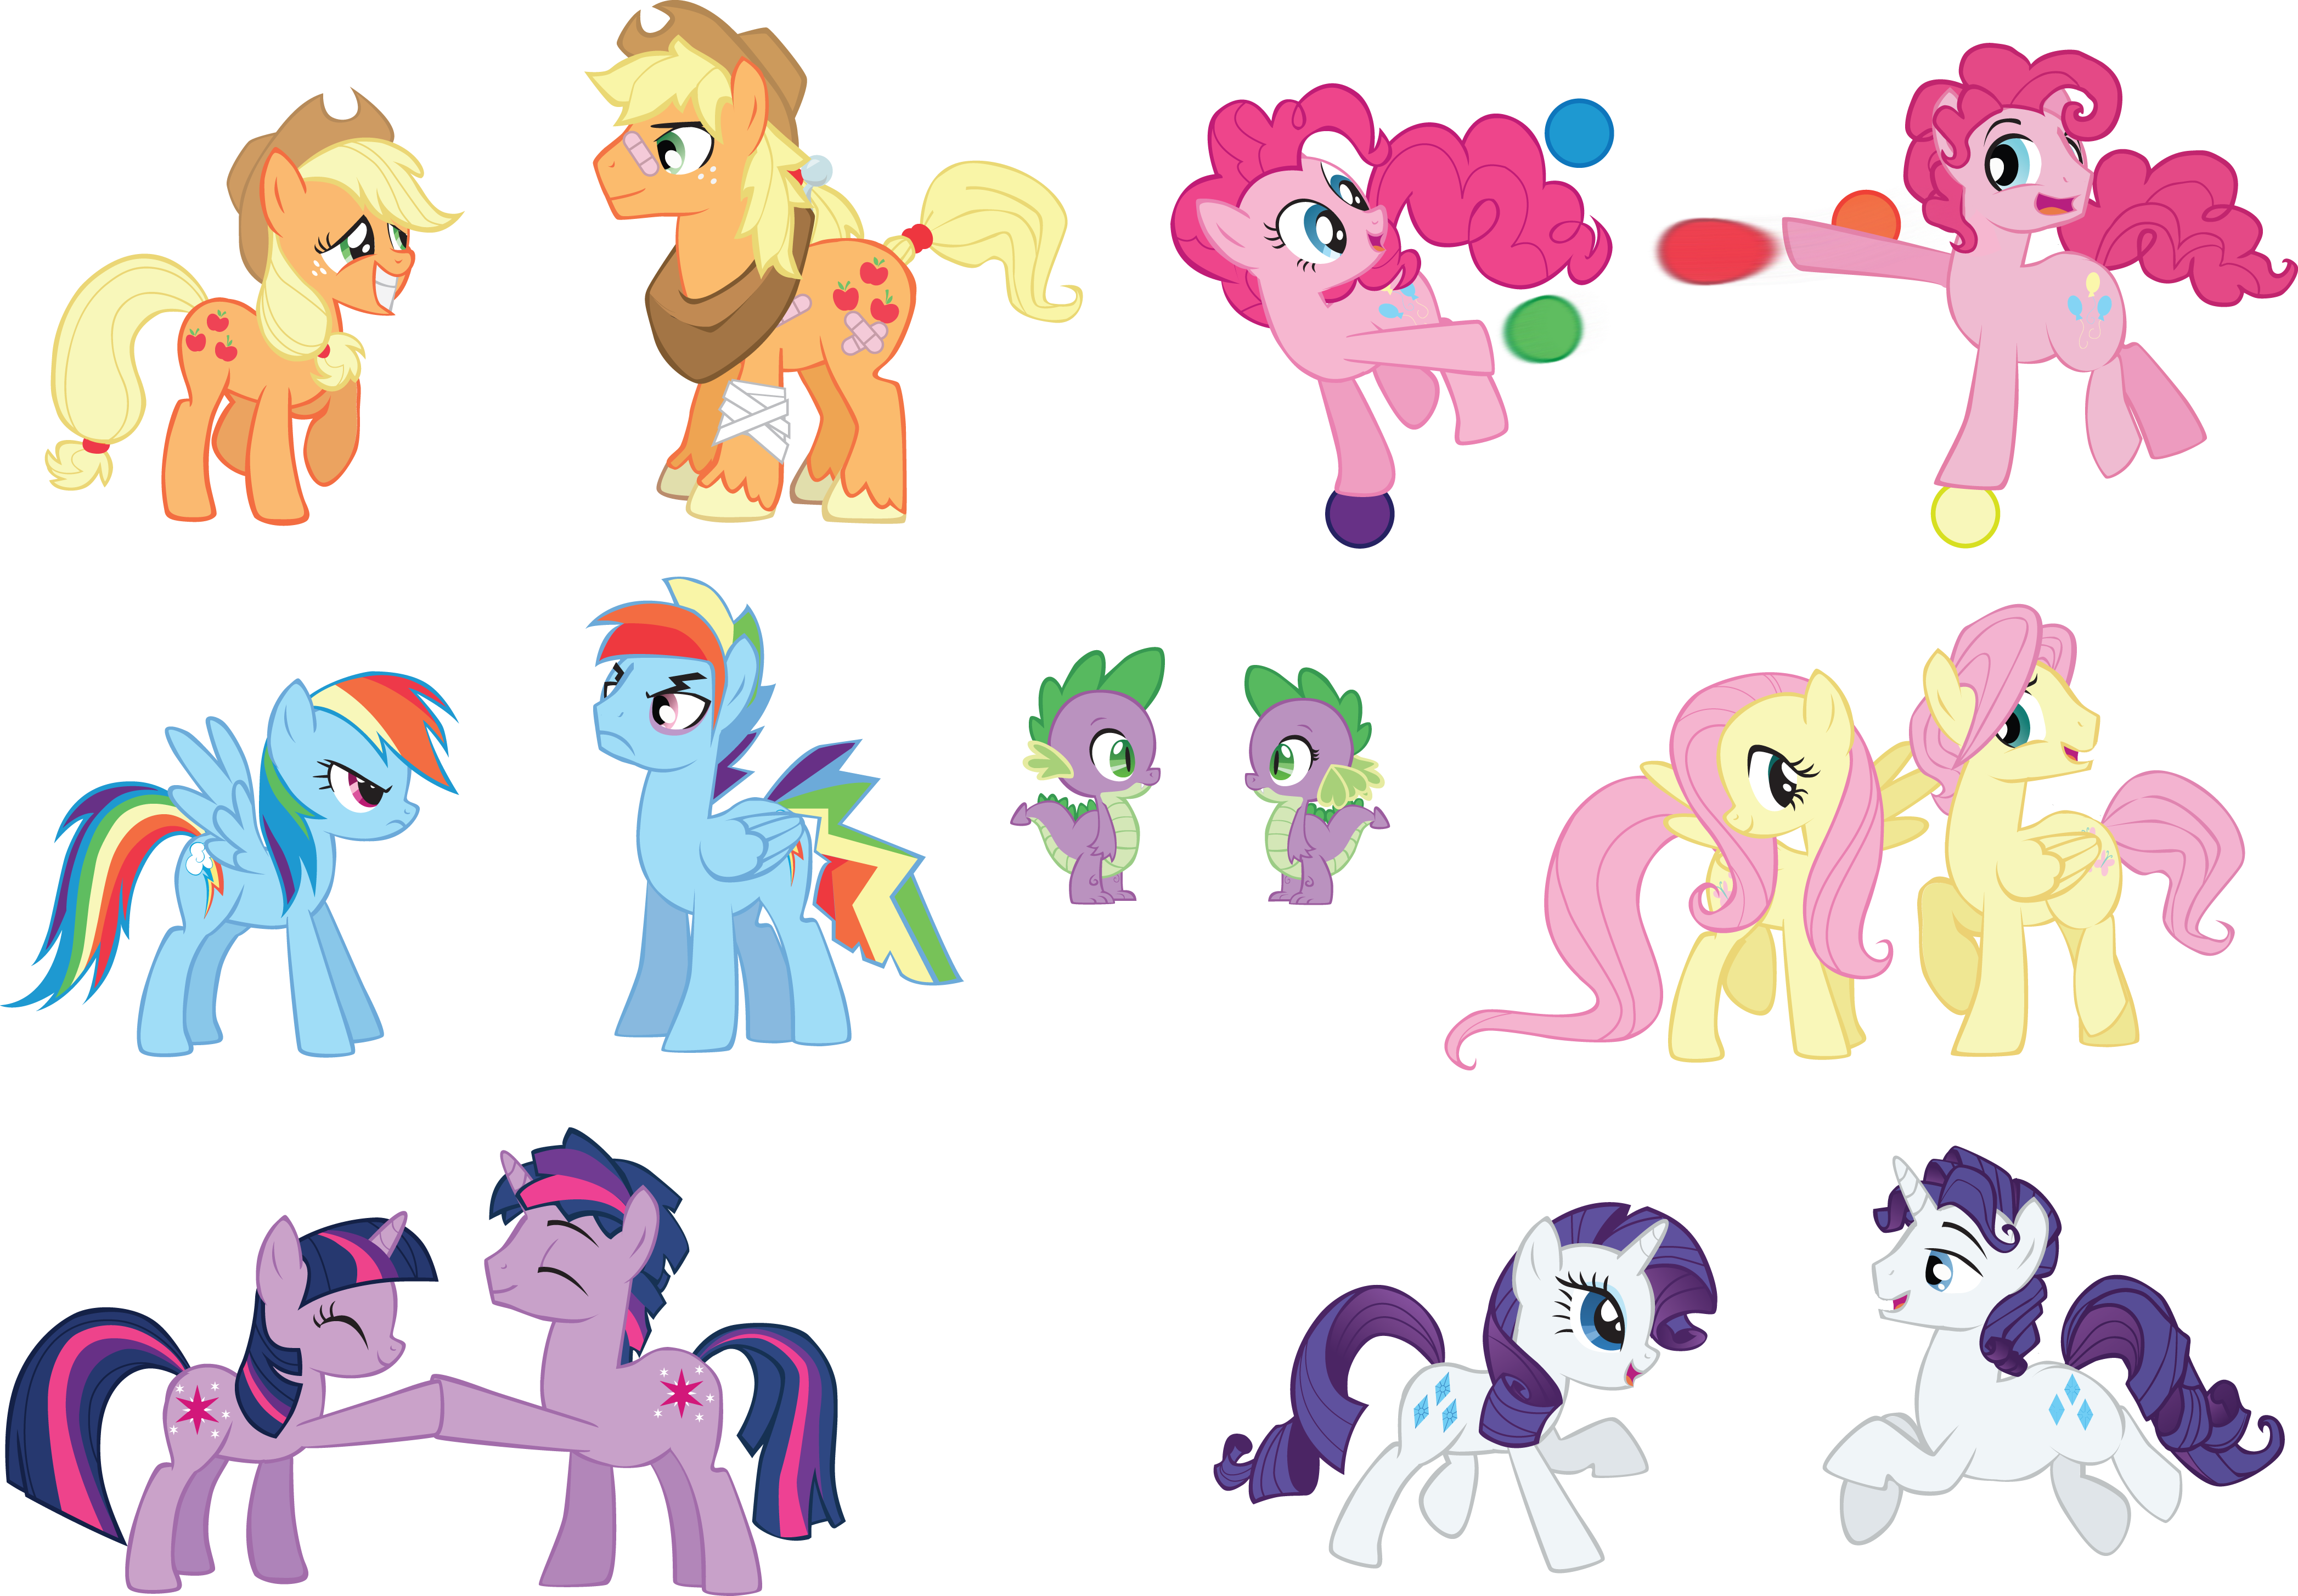 [Image - 175399] | My Little Pony Character Fandom | Know ...